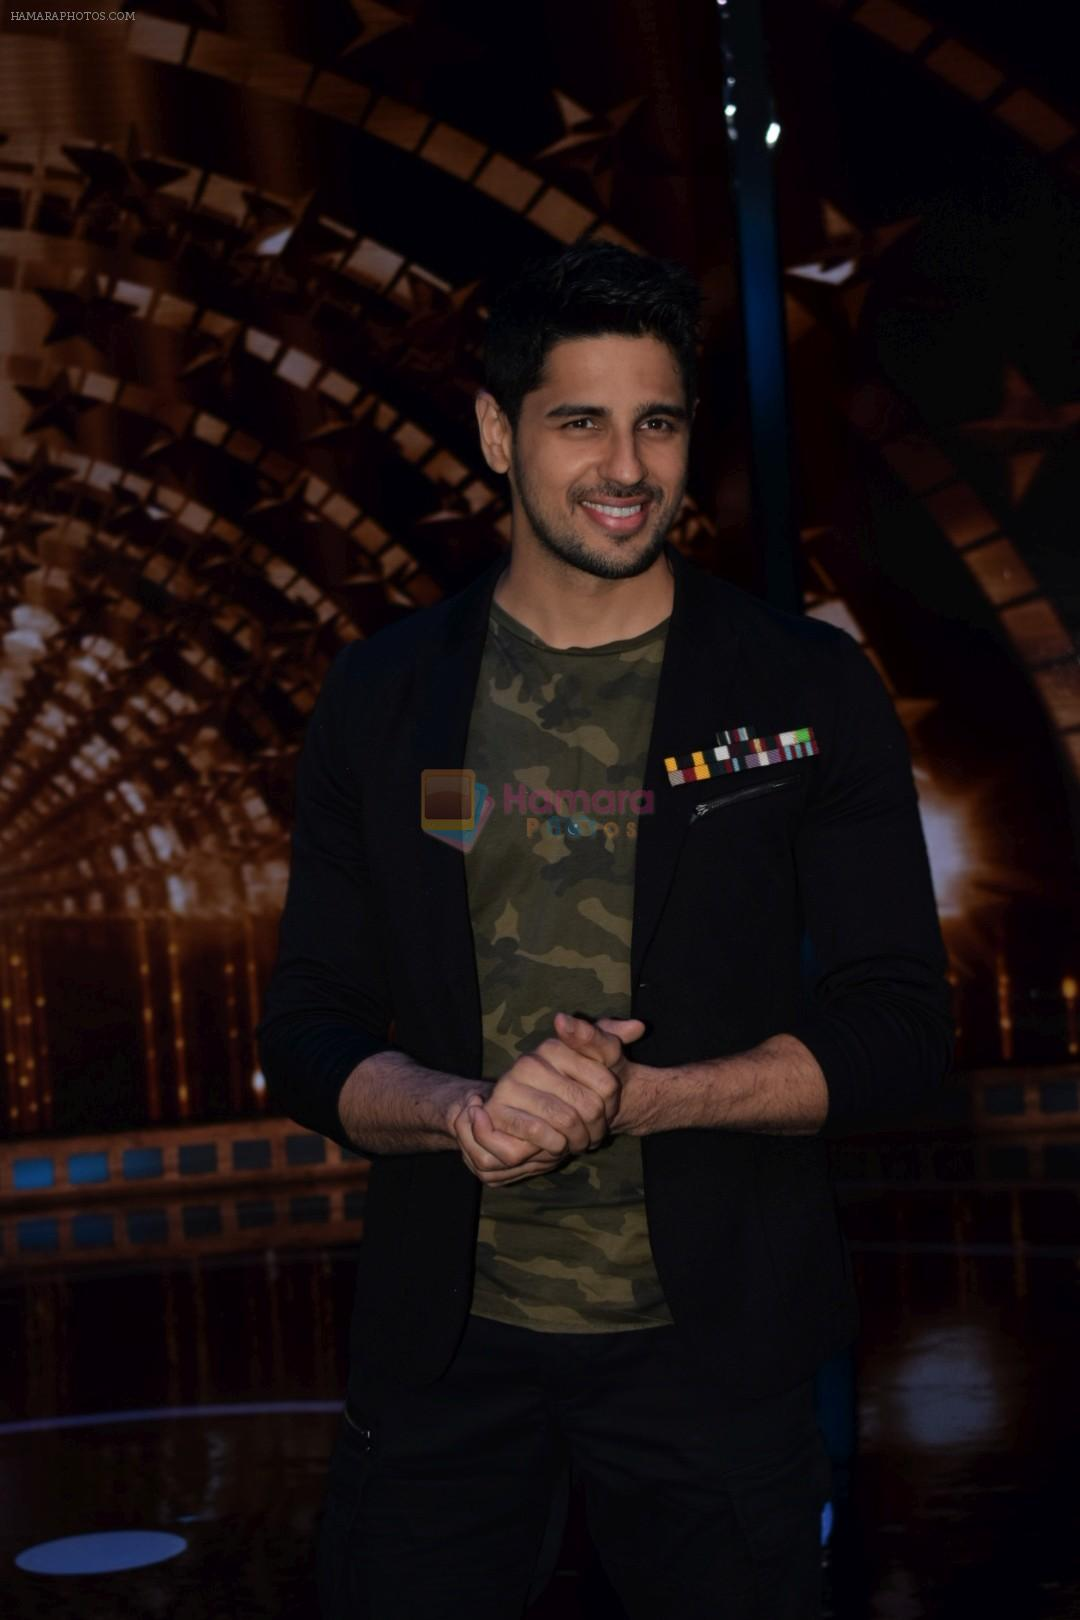 Sidharth Malhotra on the set of India's next superstar on 6th Jan 2018